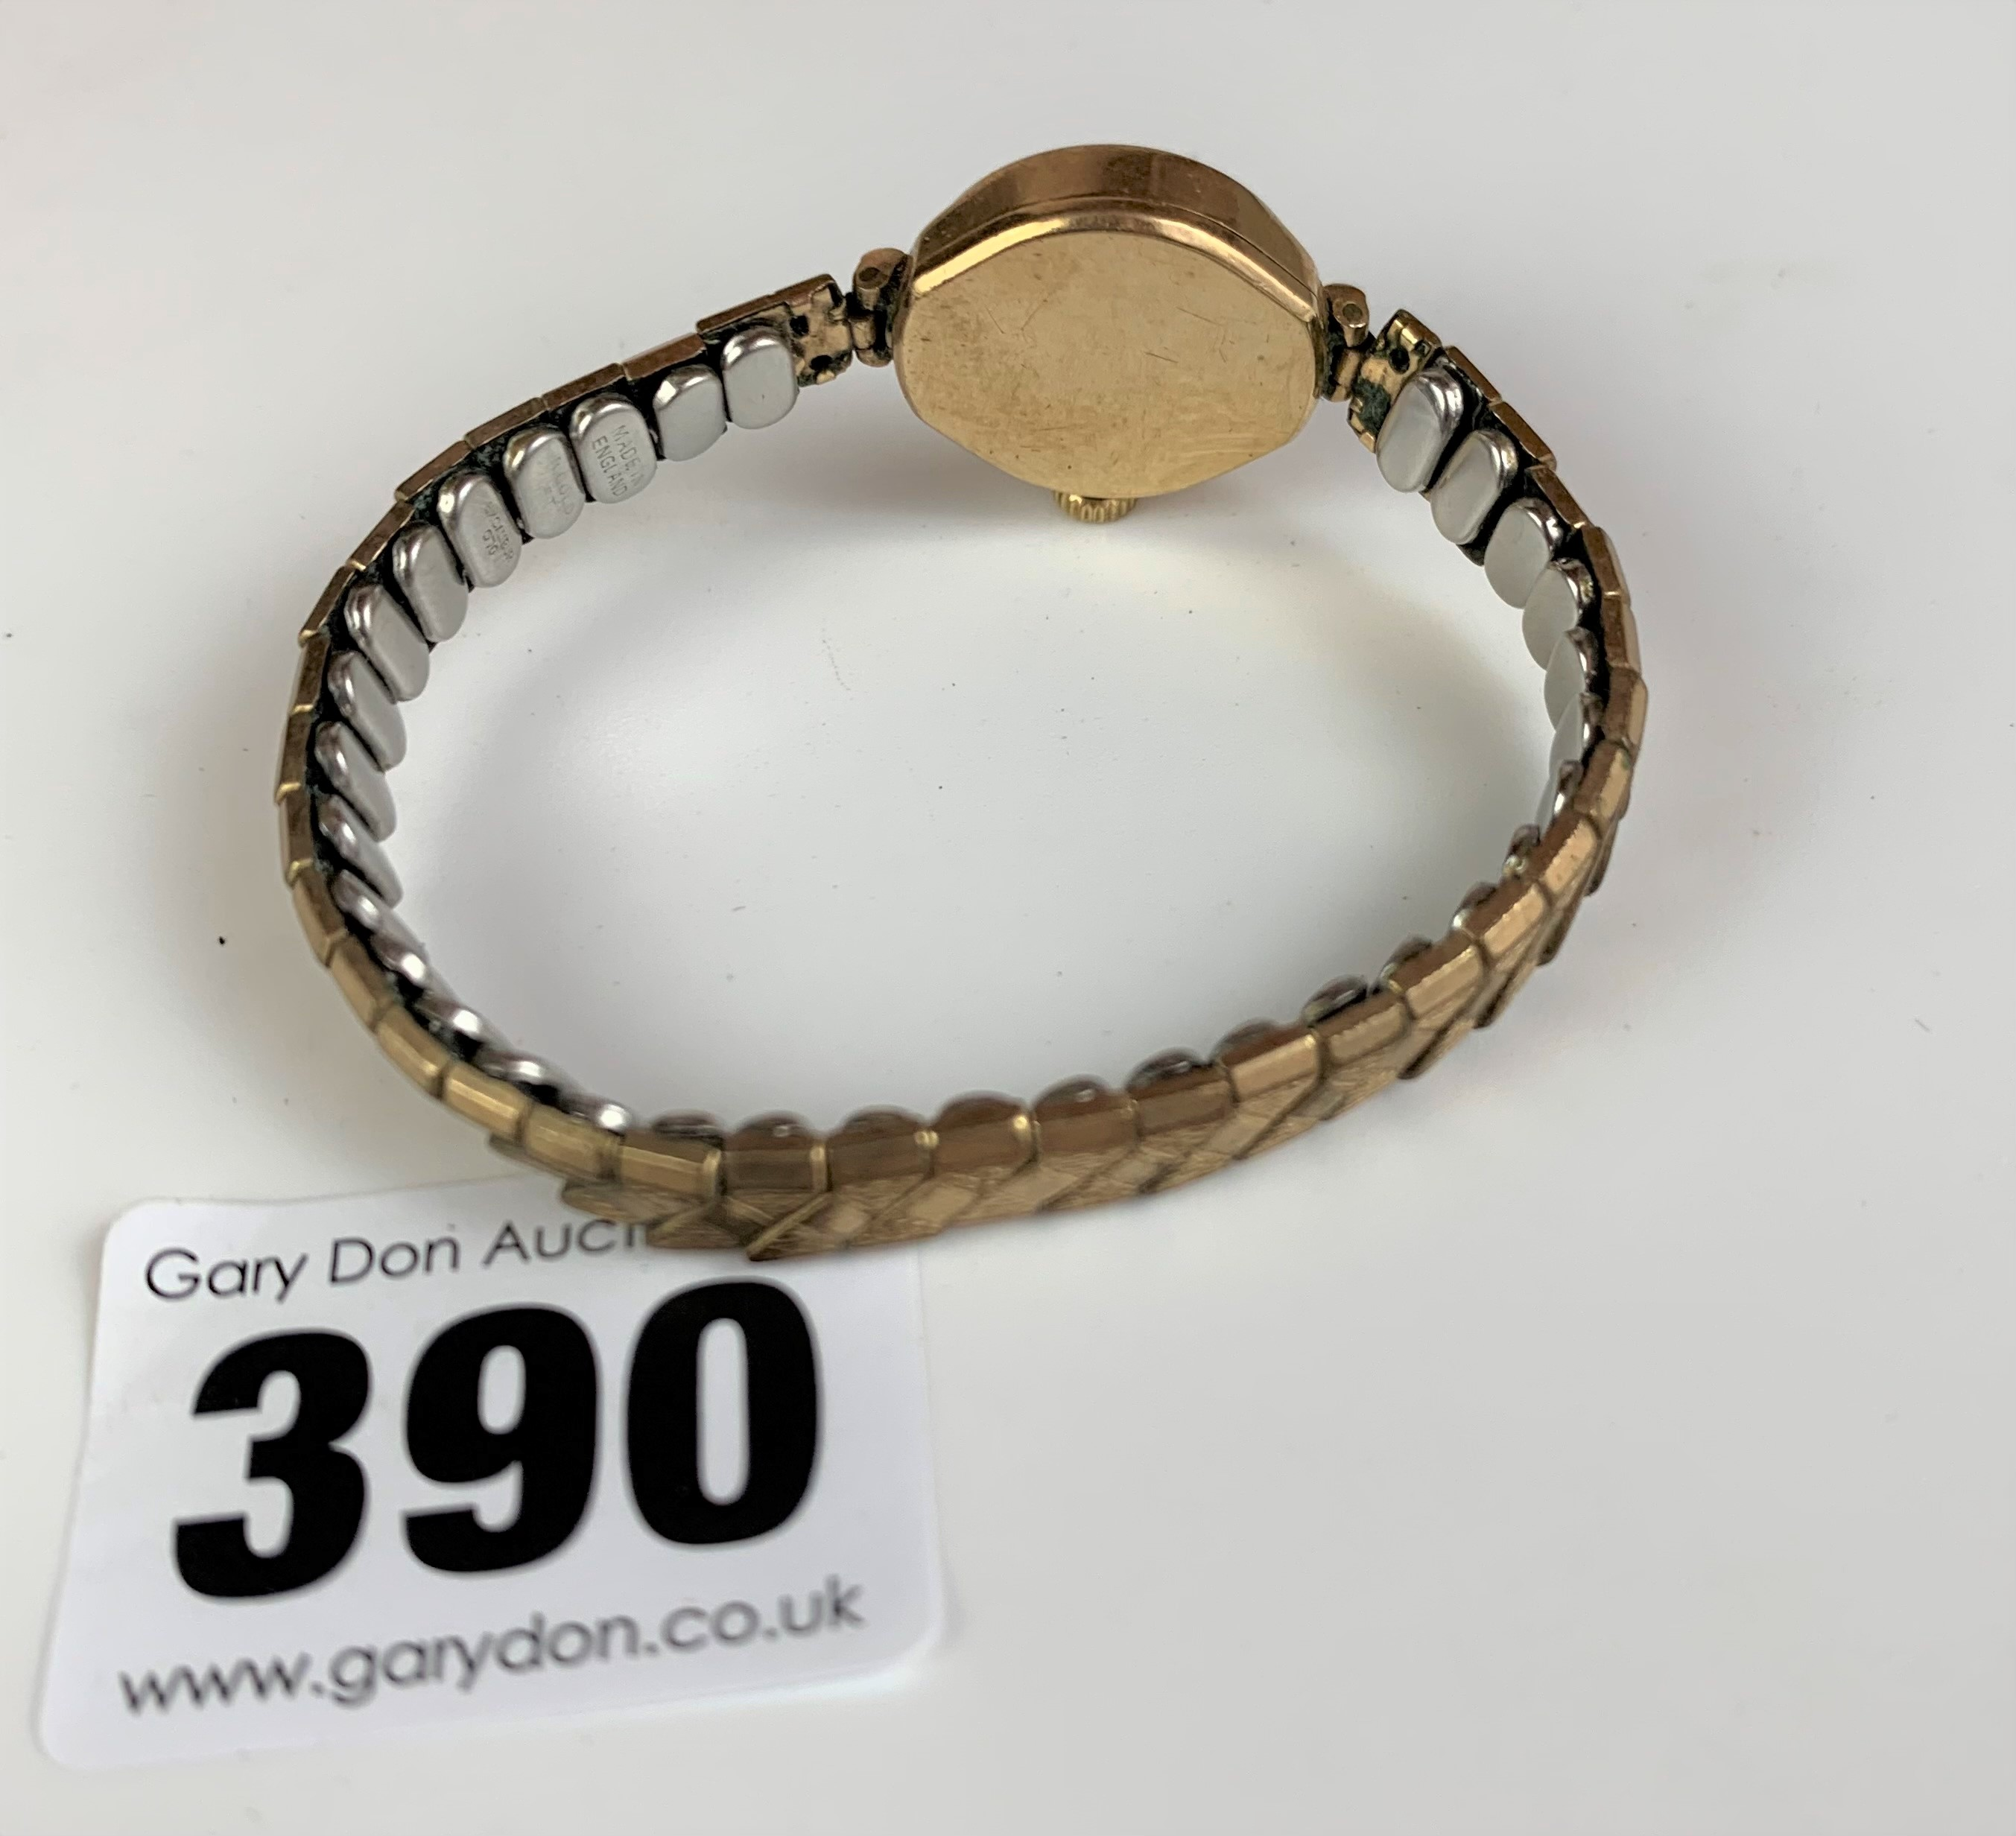 9k gold ladies Rotary watch with elasticated plated strap, total w: 15.3 gms, not working (pv £35) - Image 3 of 3